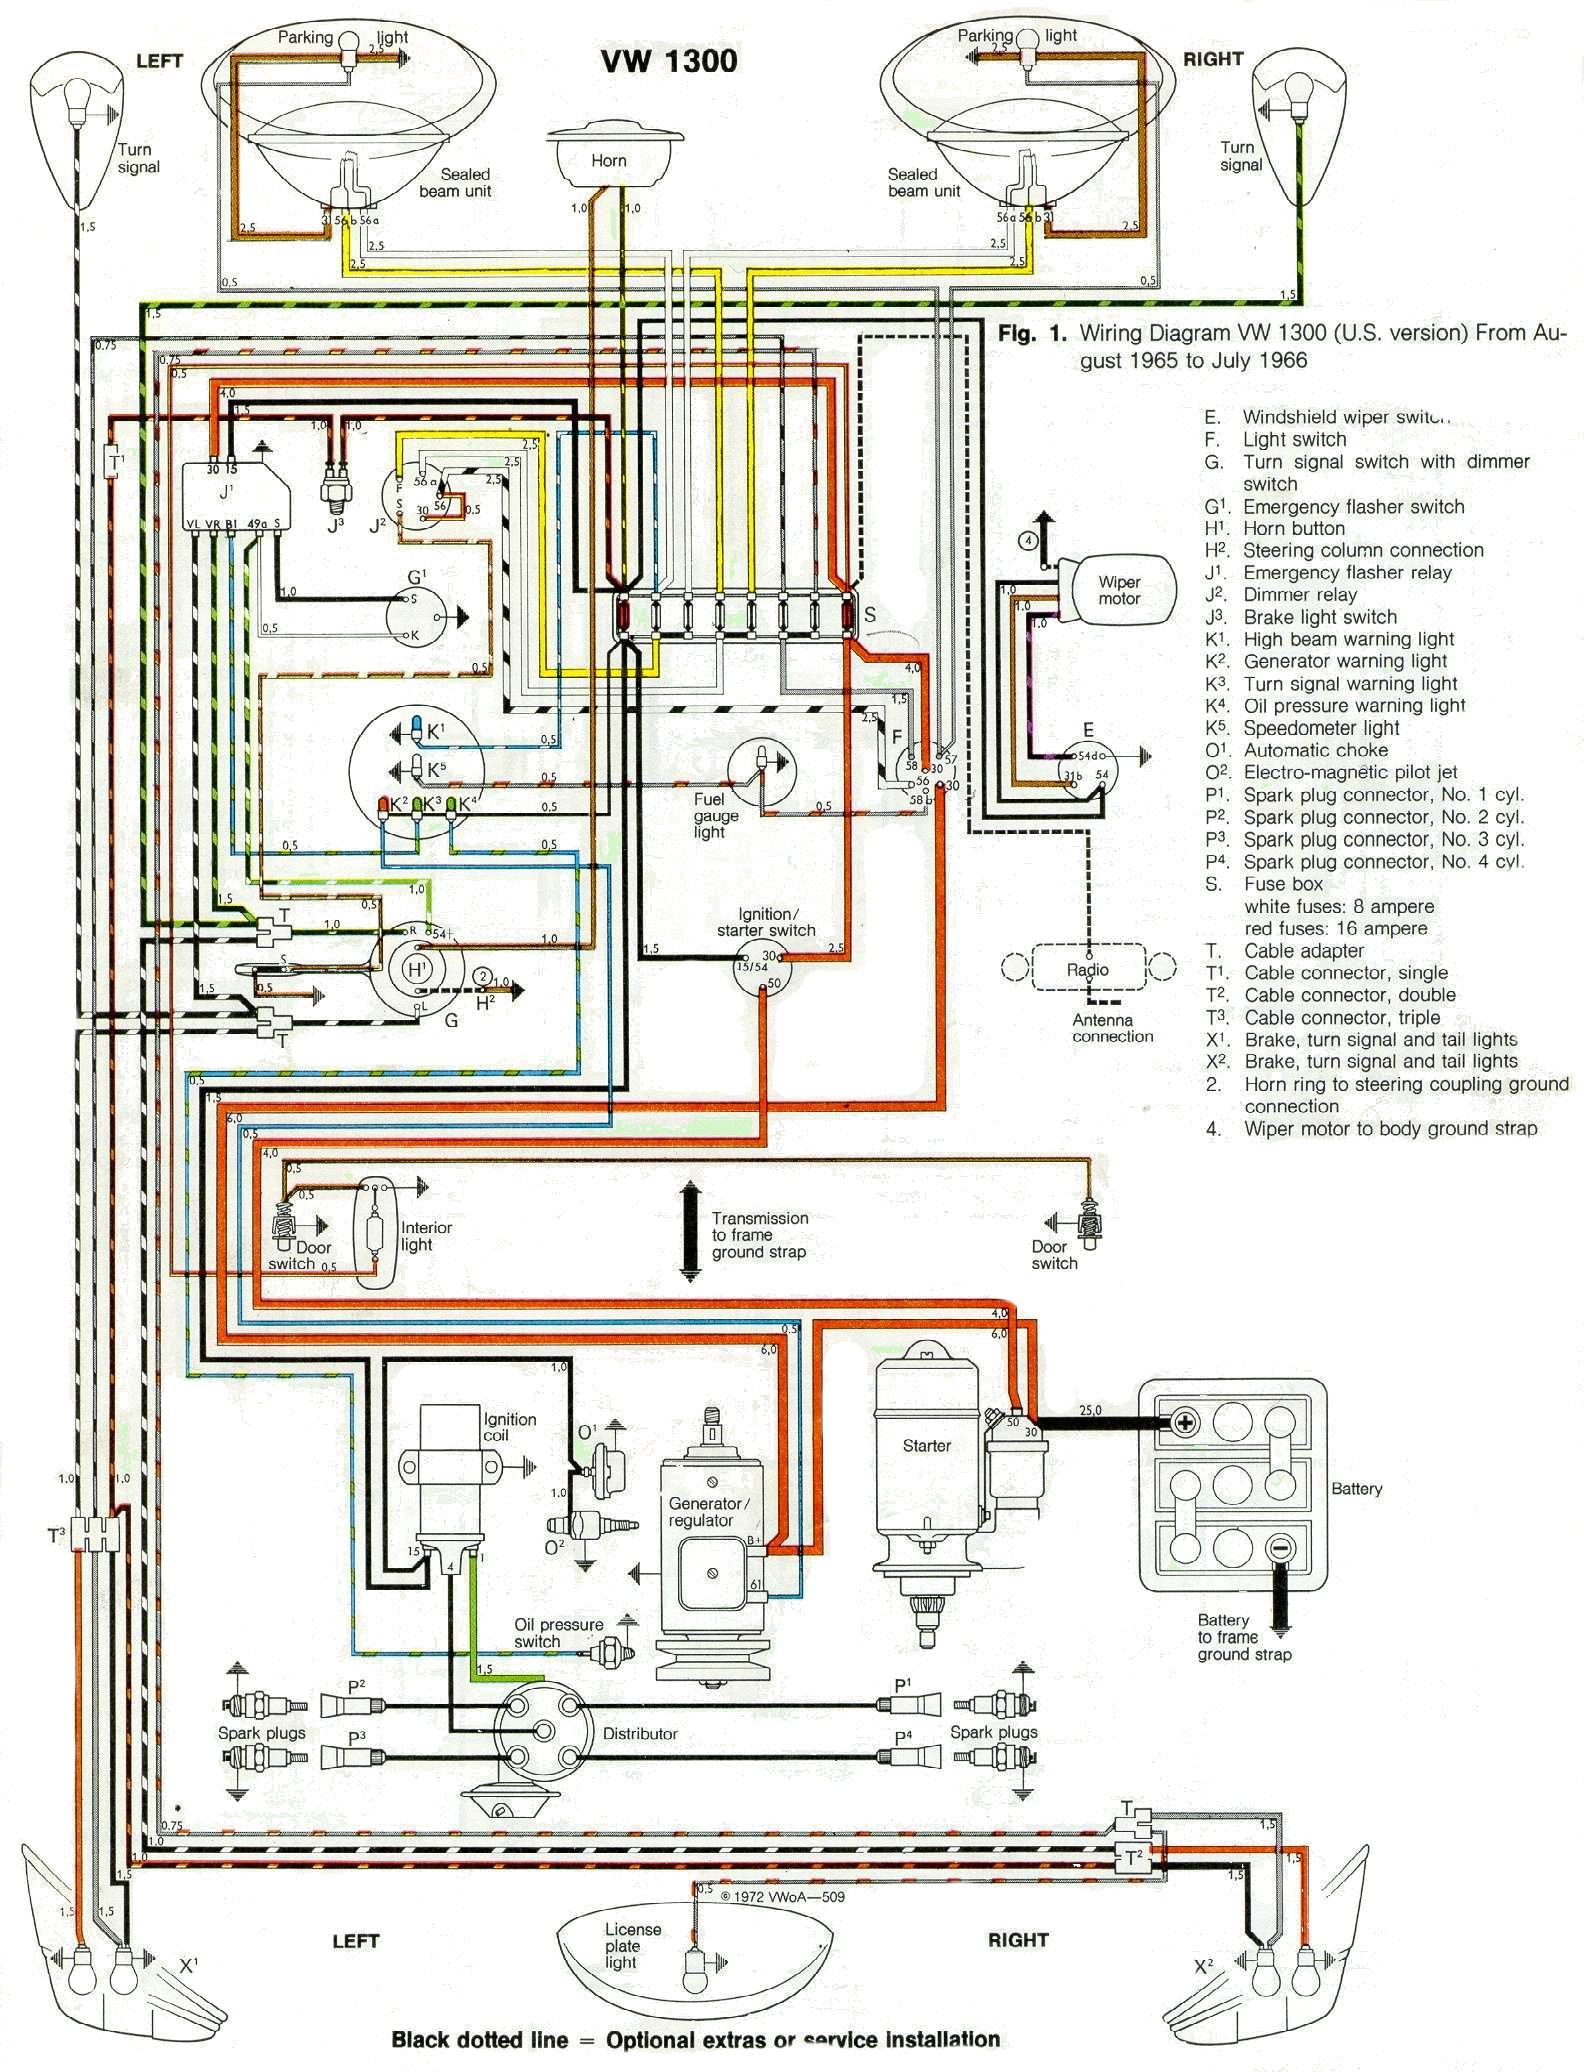 hight resolution of 1966 wiring diagram vw beetle wiring diagram 1970 vw beetle wiring diagram